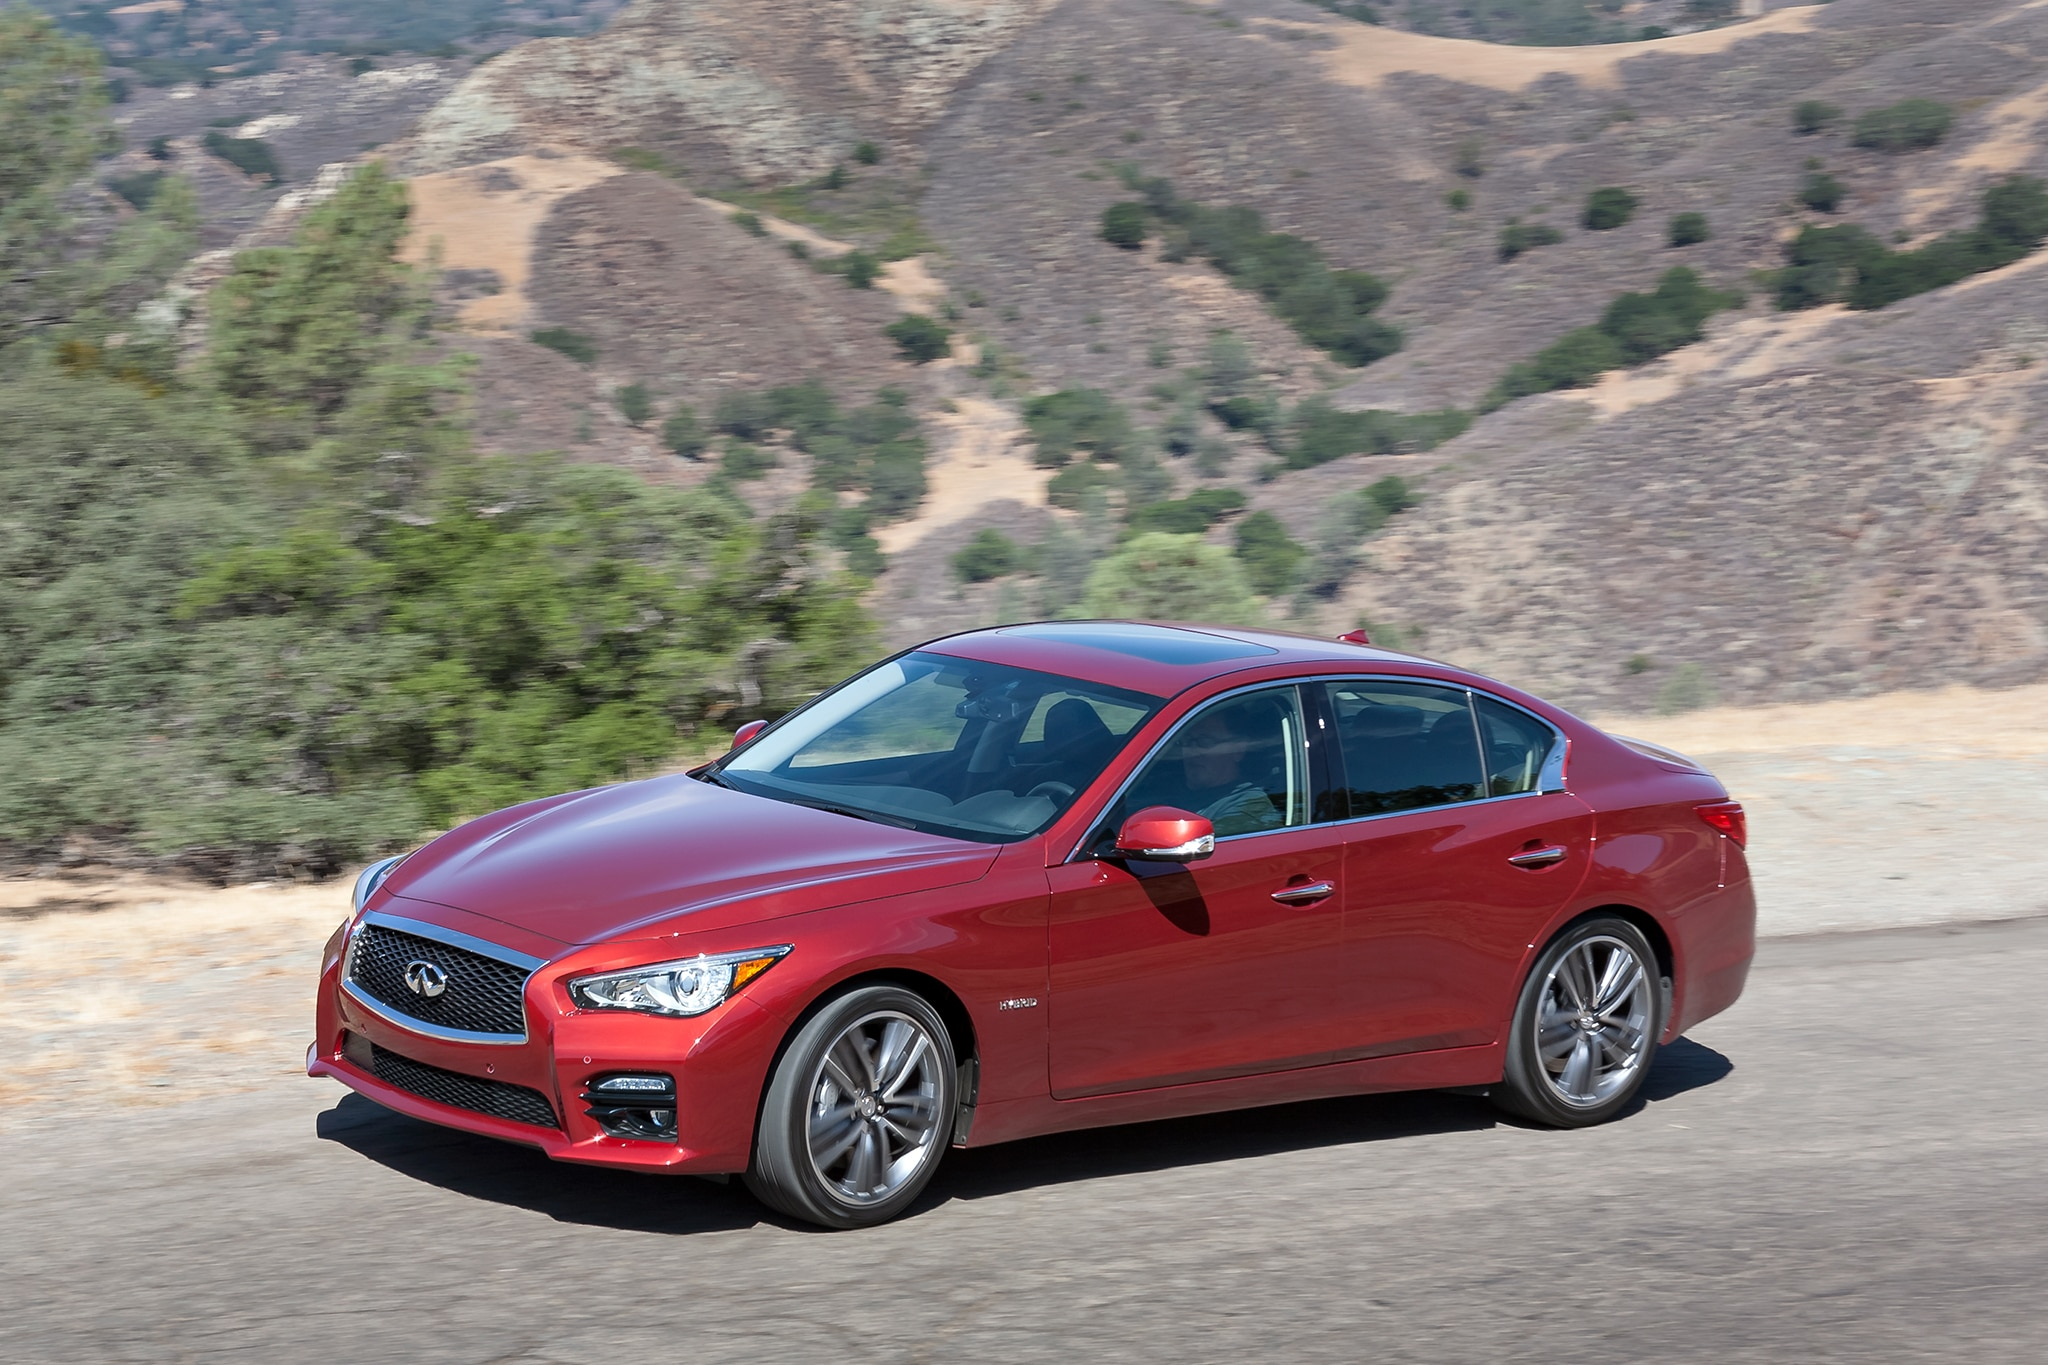 2014 Infiniti Q50 Hybrid Sport Drivers Side Above In Motion1